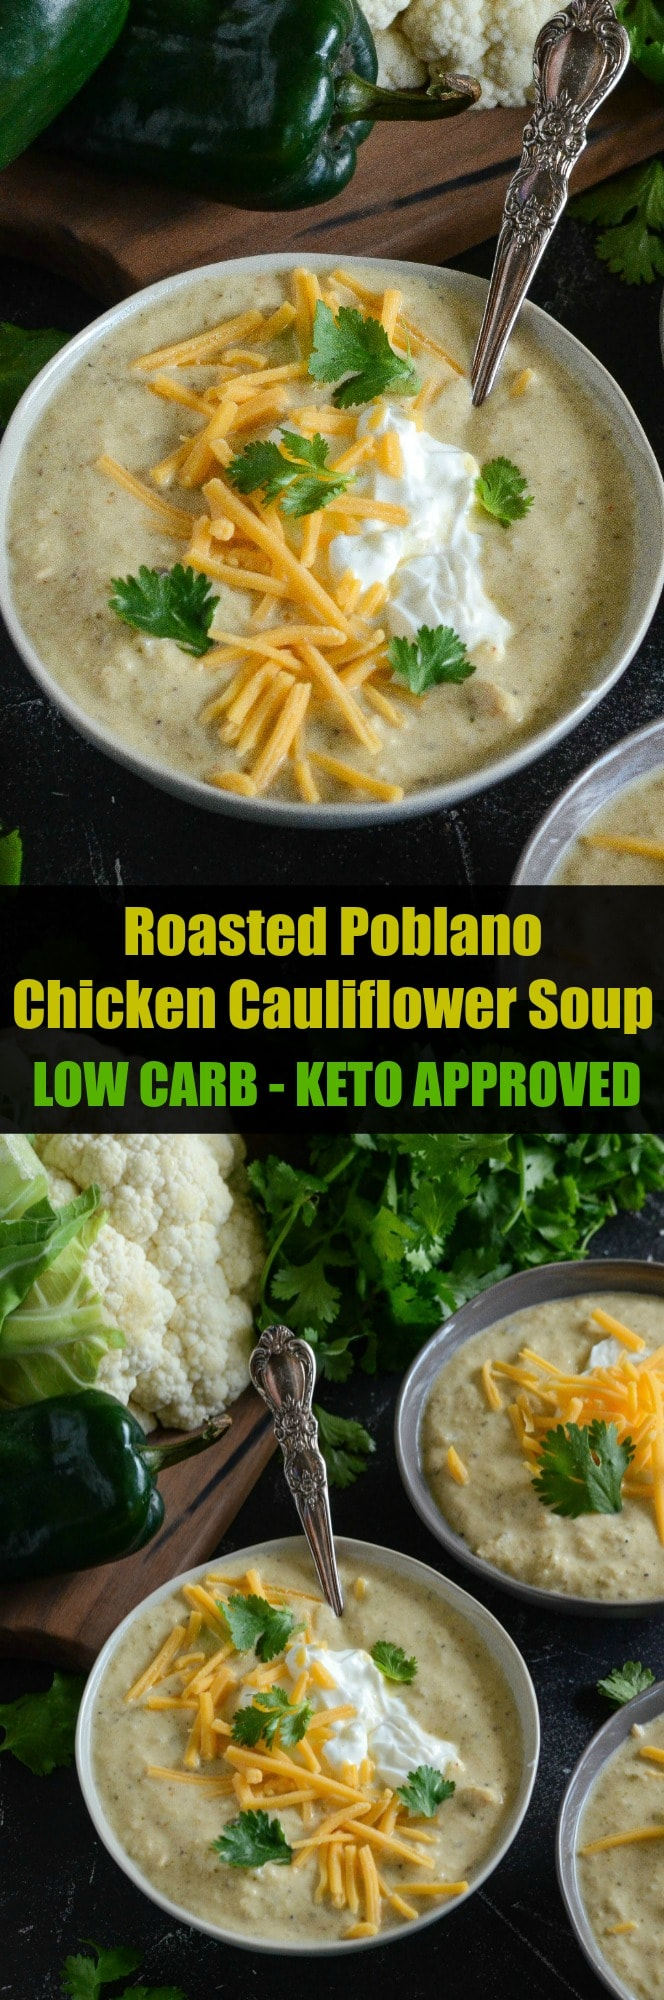 Keto Cauliflower Soup Recipe